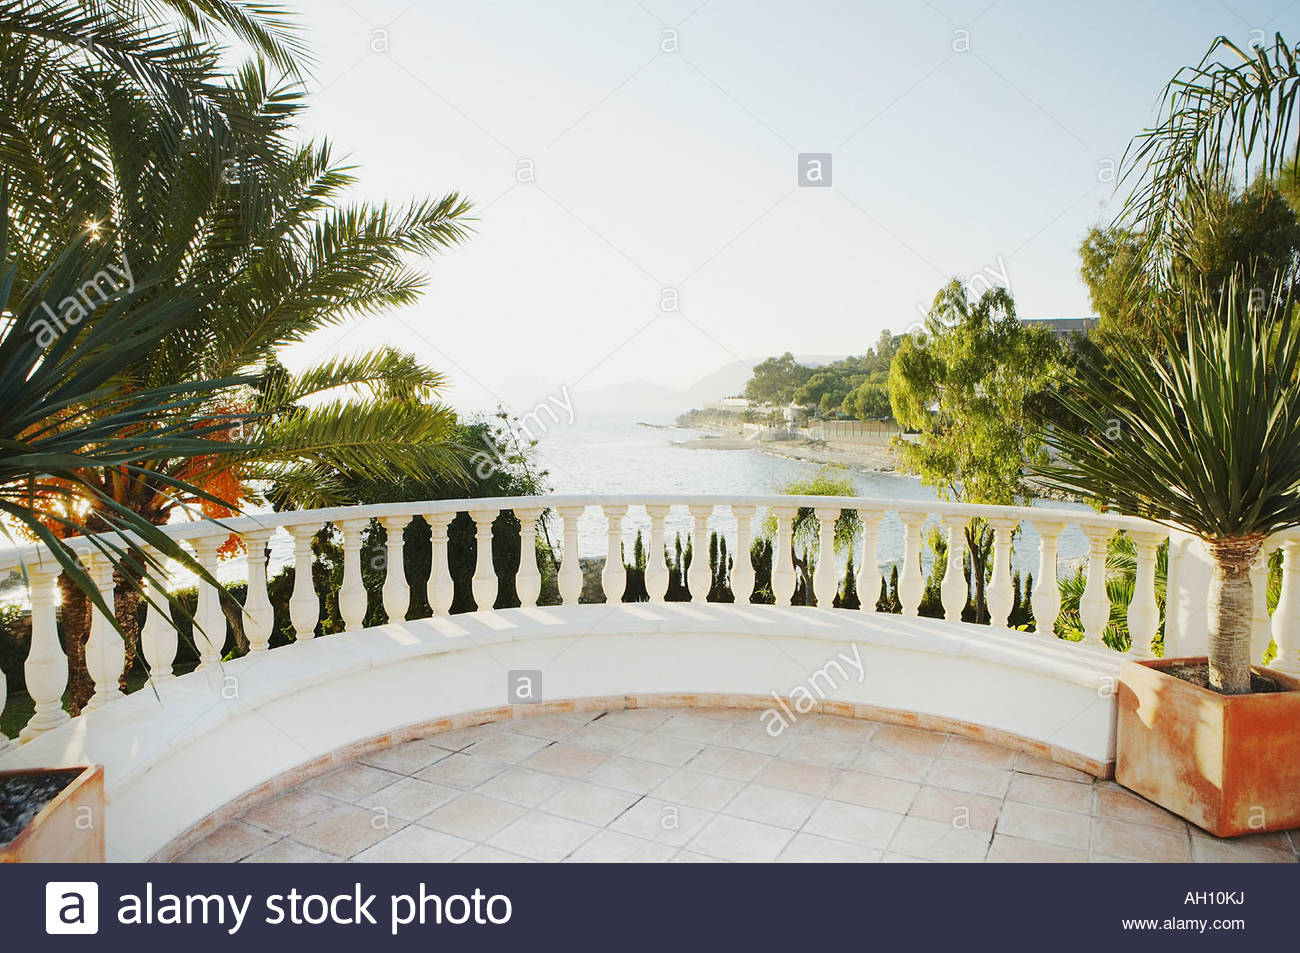 Terrace with palms above body of water - Stock Image